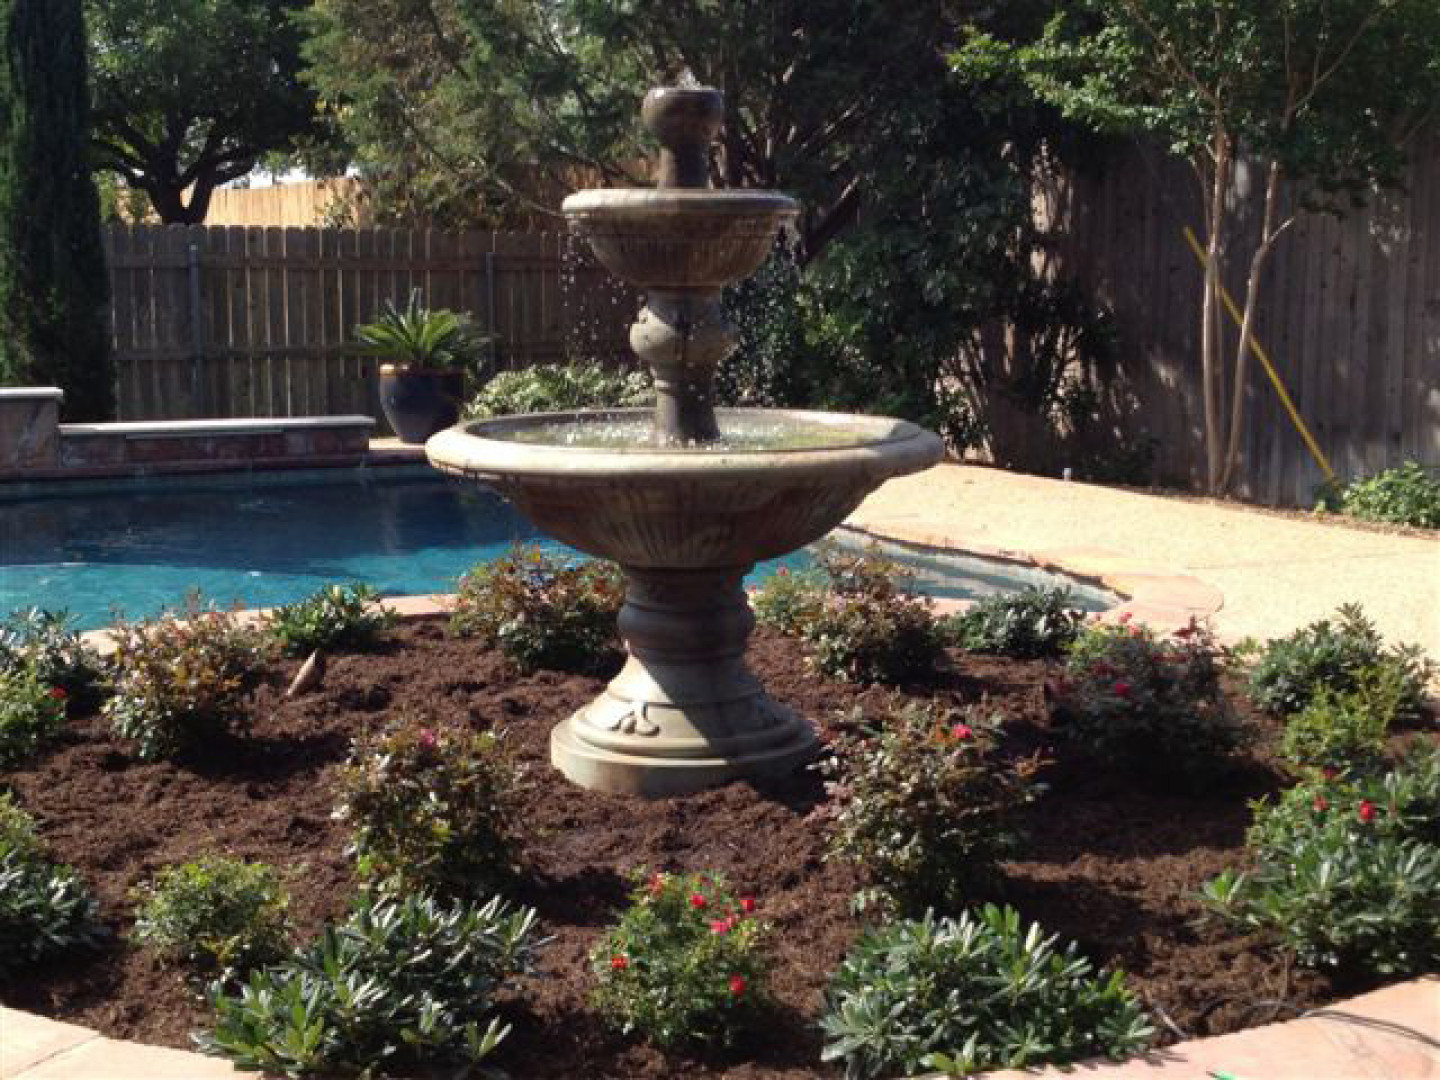 Landscaping Services in Waco, China Spring, TX & surrounding